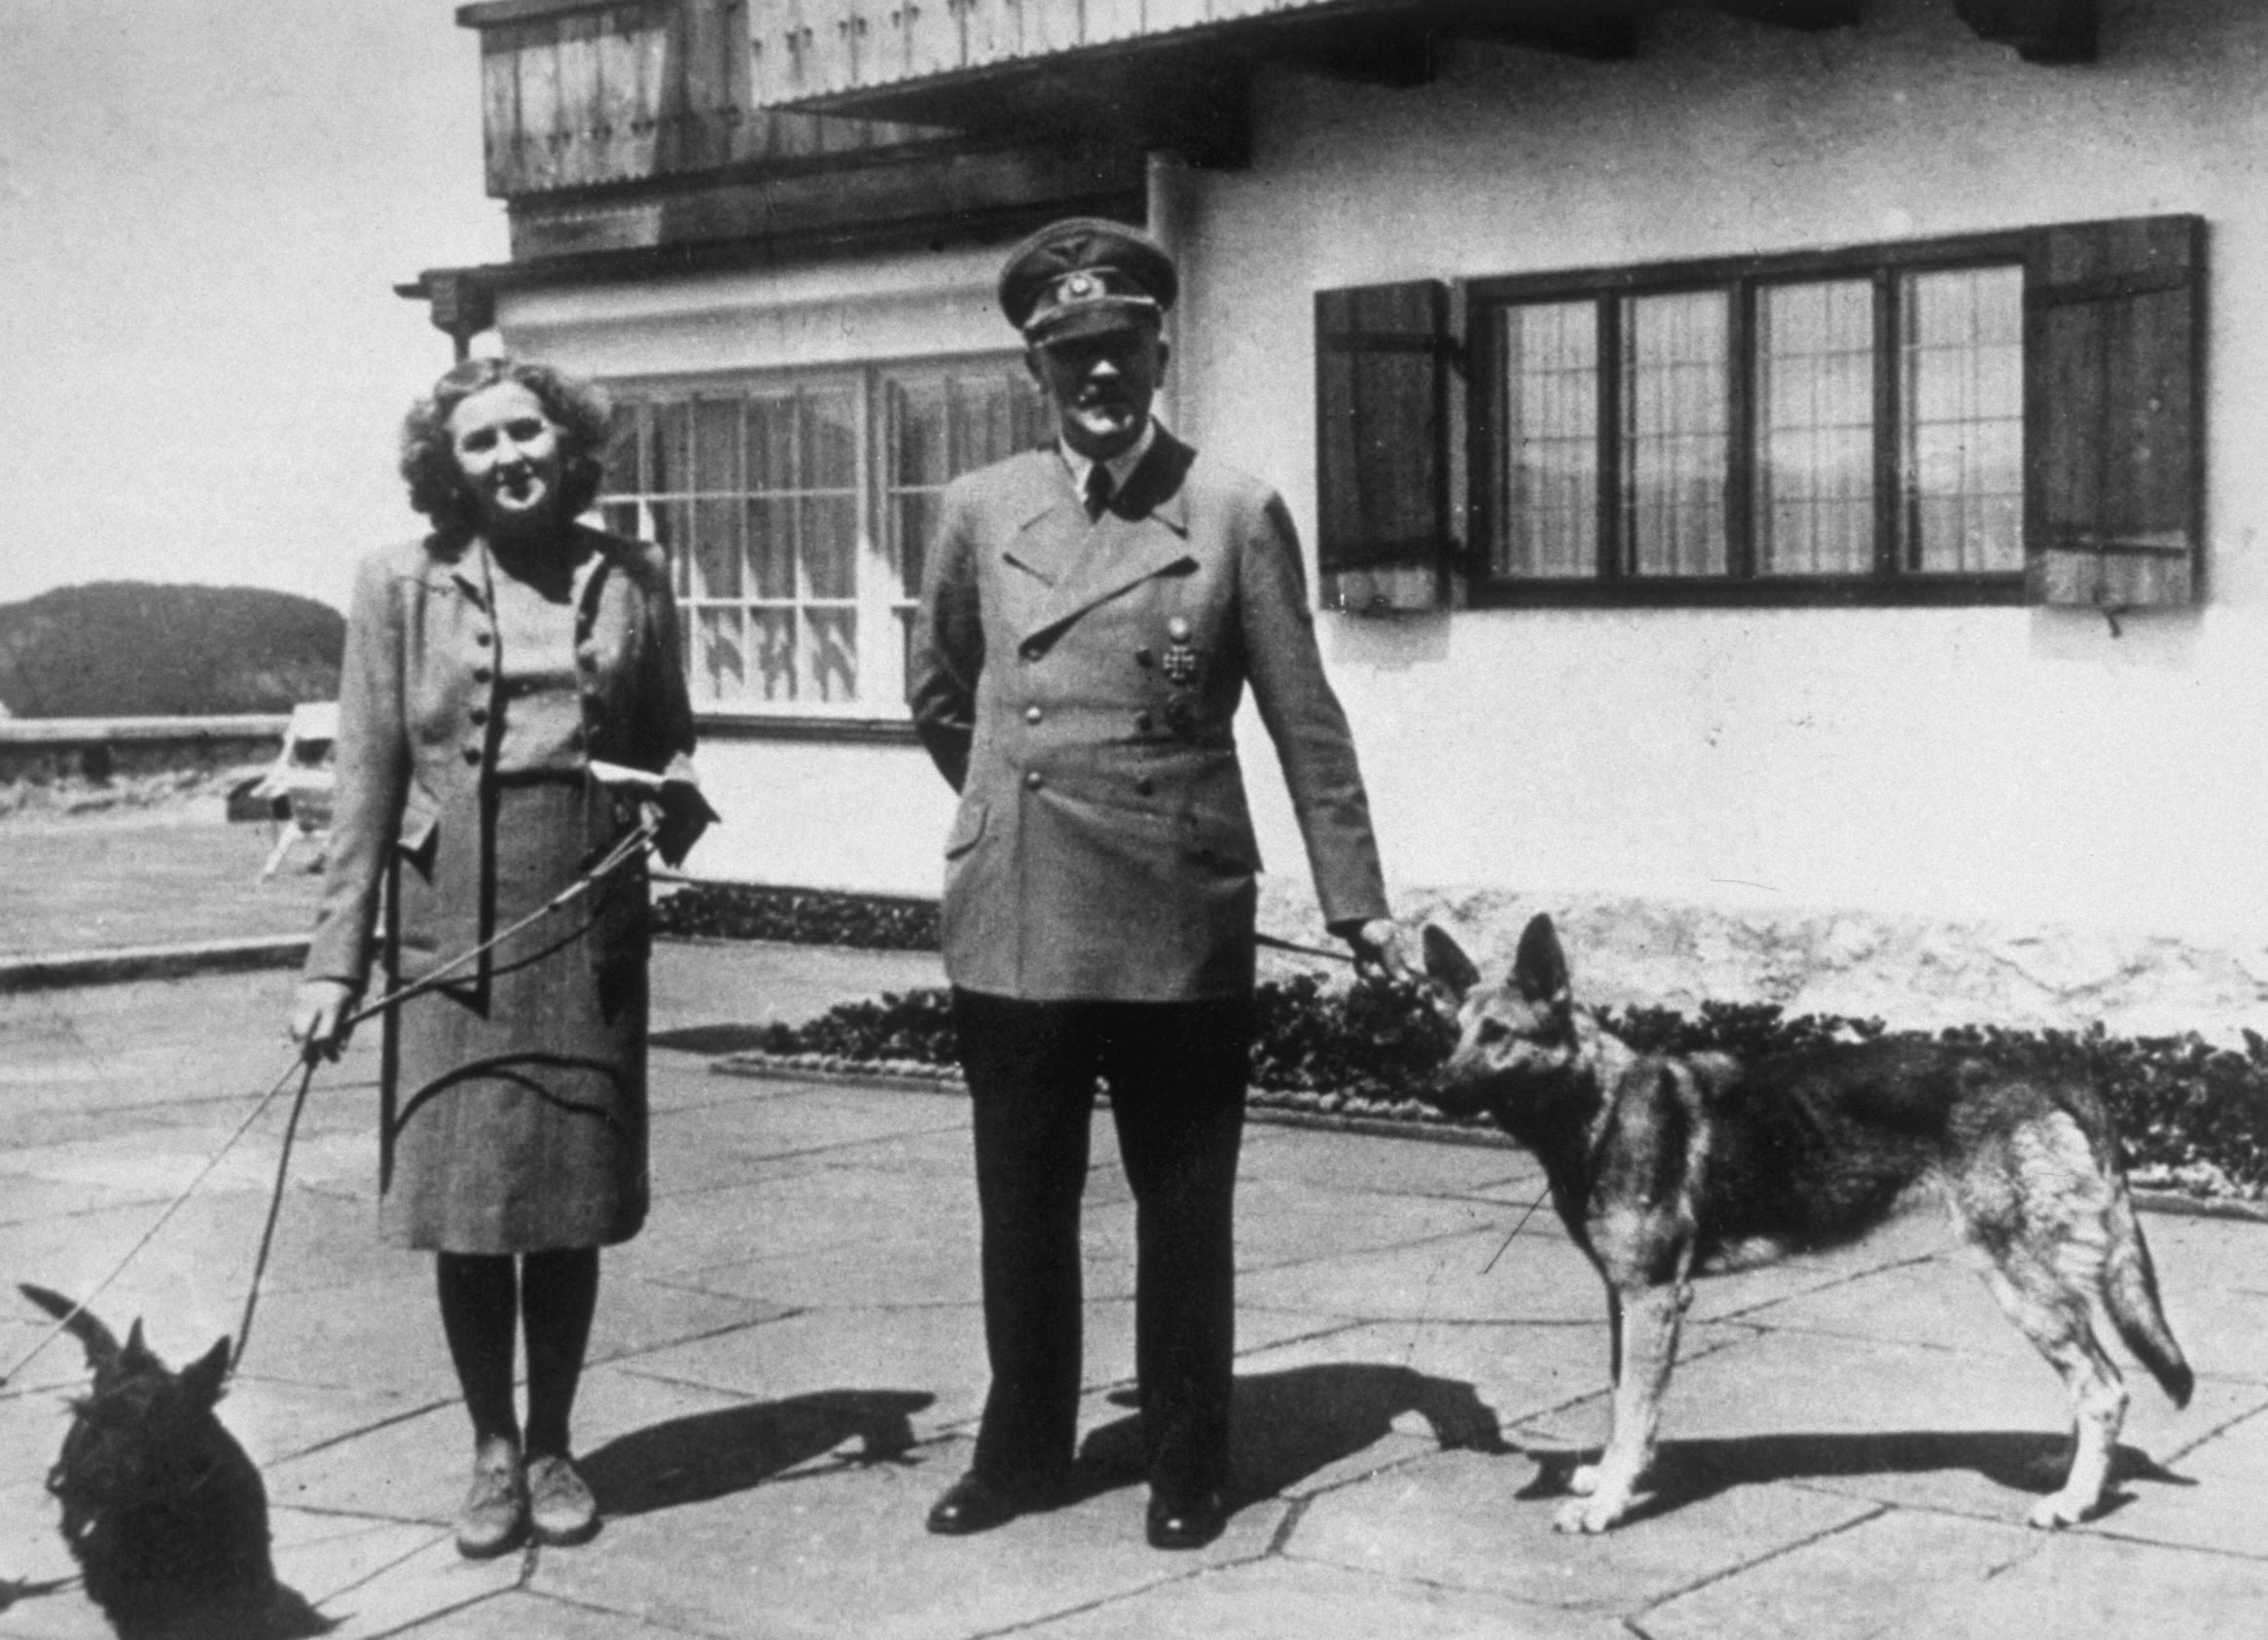 Eva Braun und Adolf Hitler: Mit ihren Hunden Blondi und Burli posieren sie 1940 vor dem Domizil im Berchtesgadener Land.  (Quelle: Thinkstock by Getty-Images/Keystone)